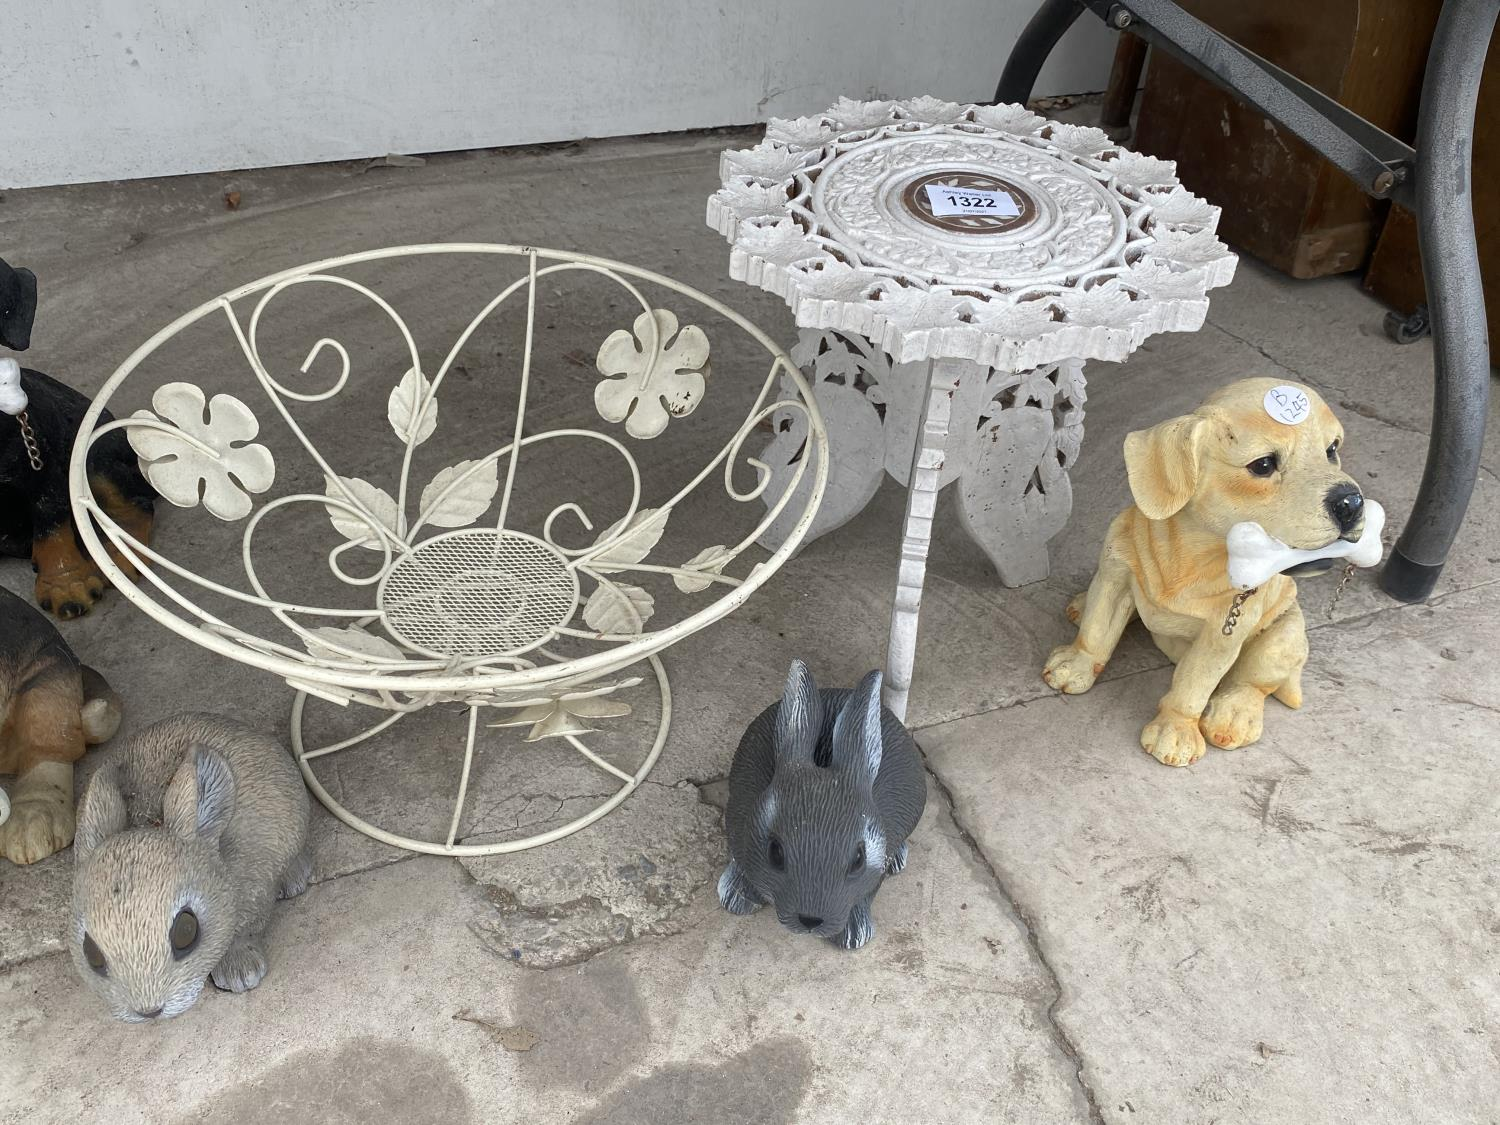 AN ASSORTMENT OF ORNAMENTS TO INCLUDE DOGS, BIRDS AND RABBITS ETC - Image 4 of 4